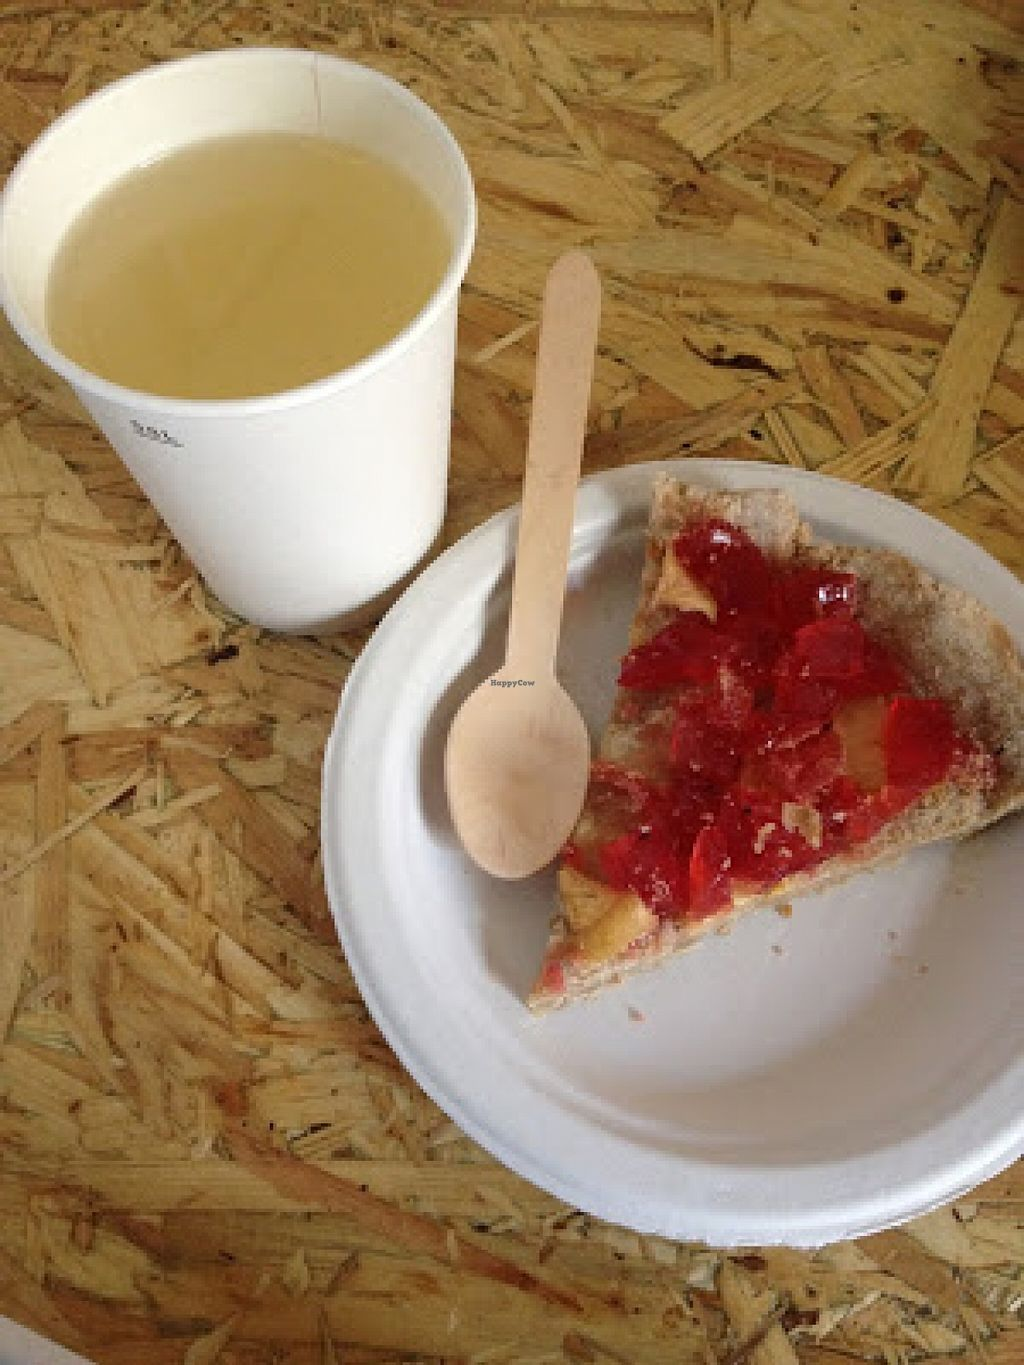 """Photo of CLOSED: Veganski Bar  by <a href=""""/members/profile/jojoinbrighton"""">jojoinbrighton</a> <br/>'Fresh Fruit Tart'!! <br/> August 31, 2015  - <a href='/contact/abuse/image/58255/115913'>Report</a>"""